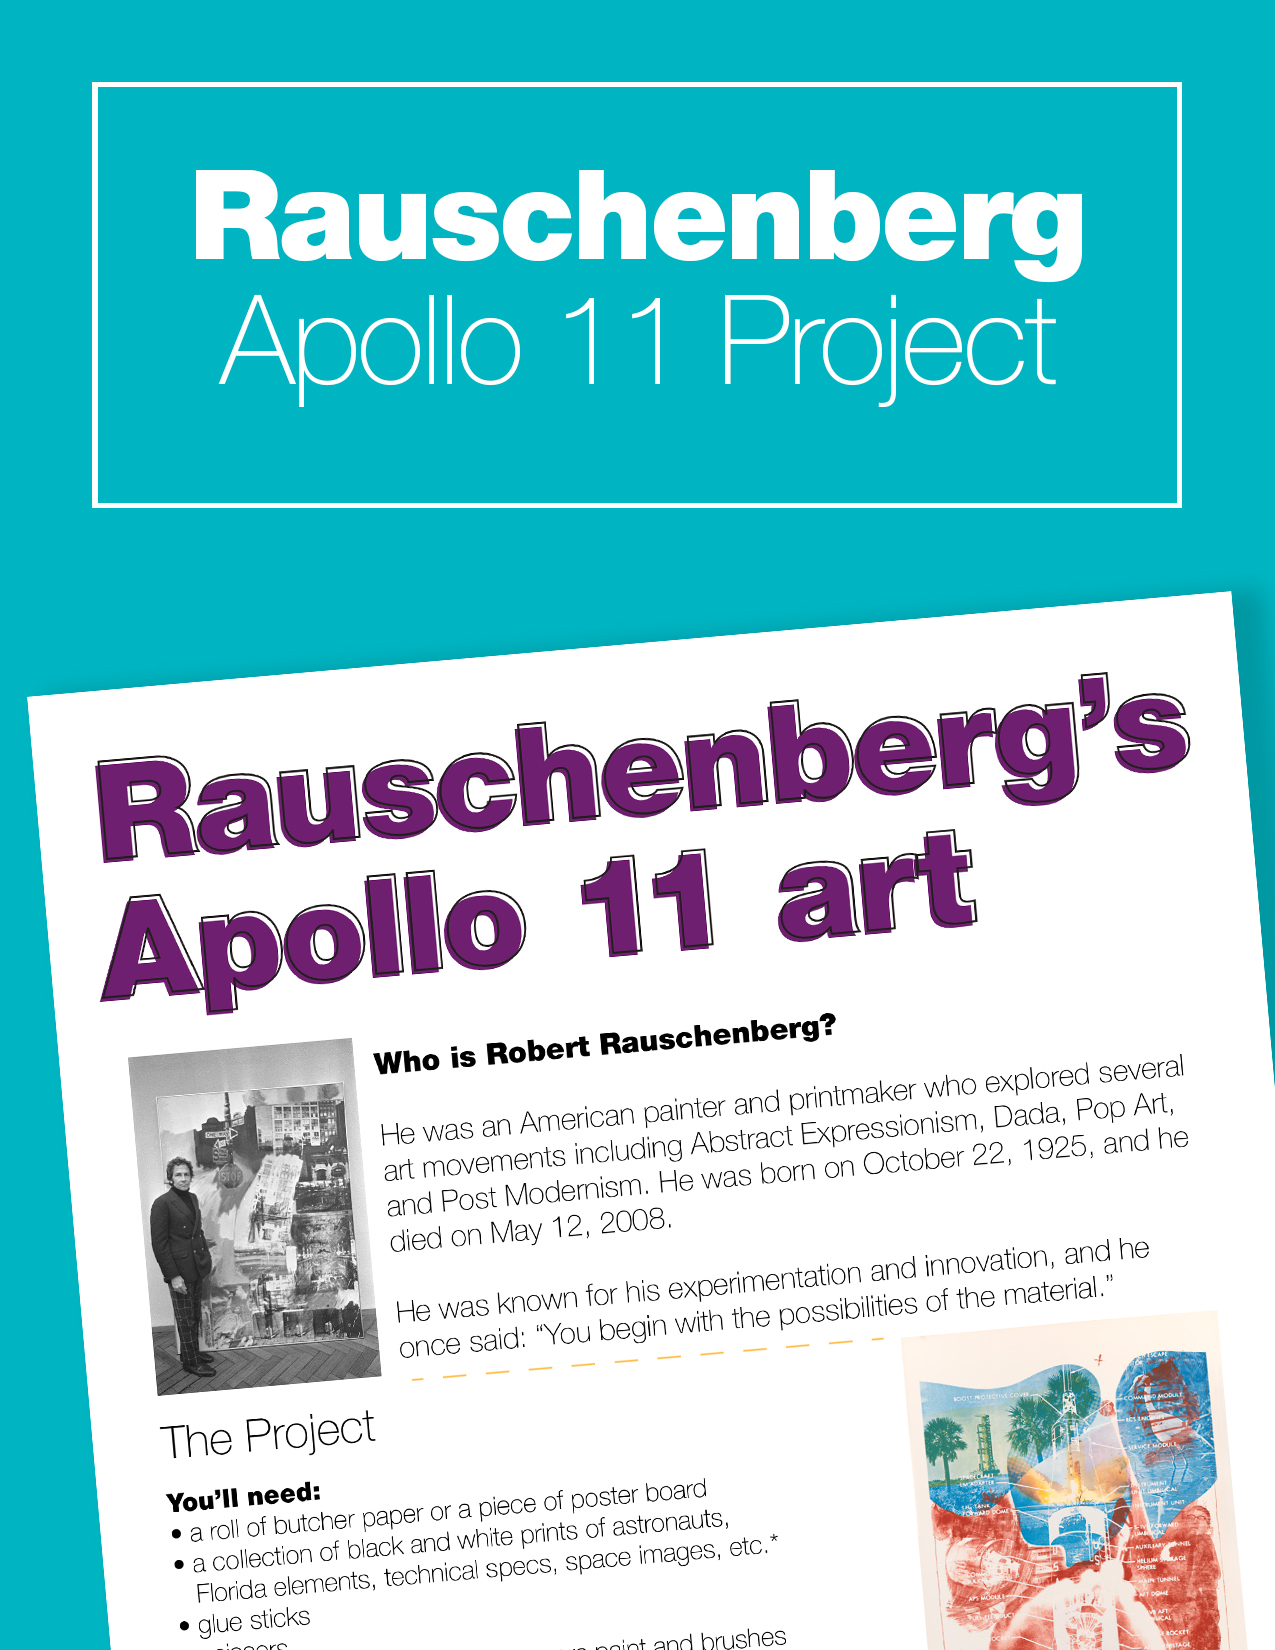 Apollo 11 Moon Landing Art Activity Inspired by the art of Robert Rauschenberg